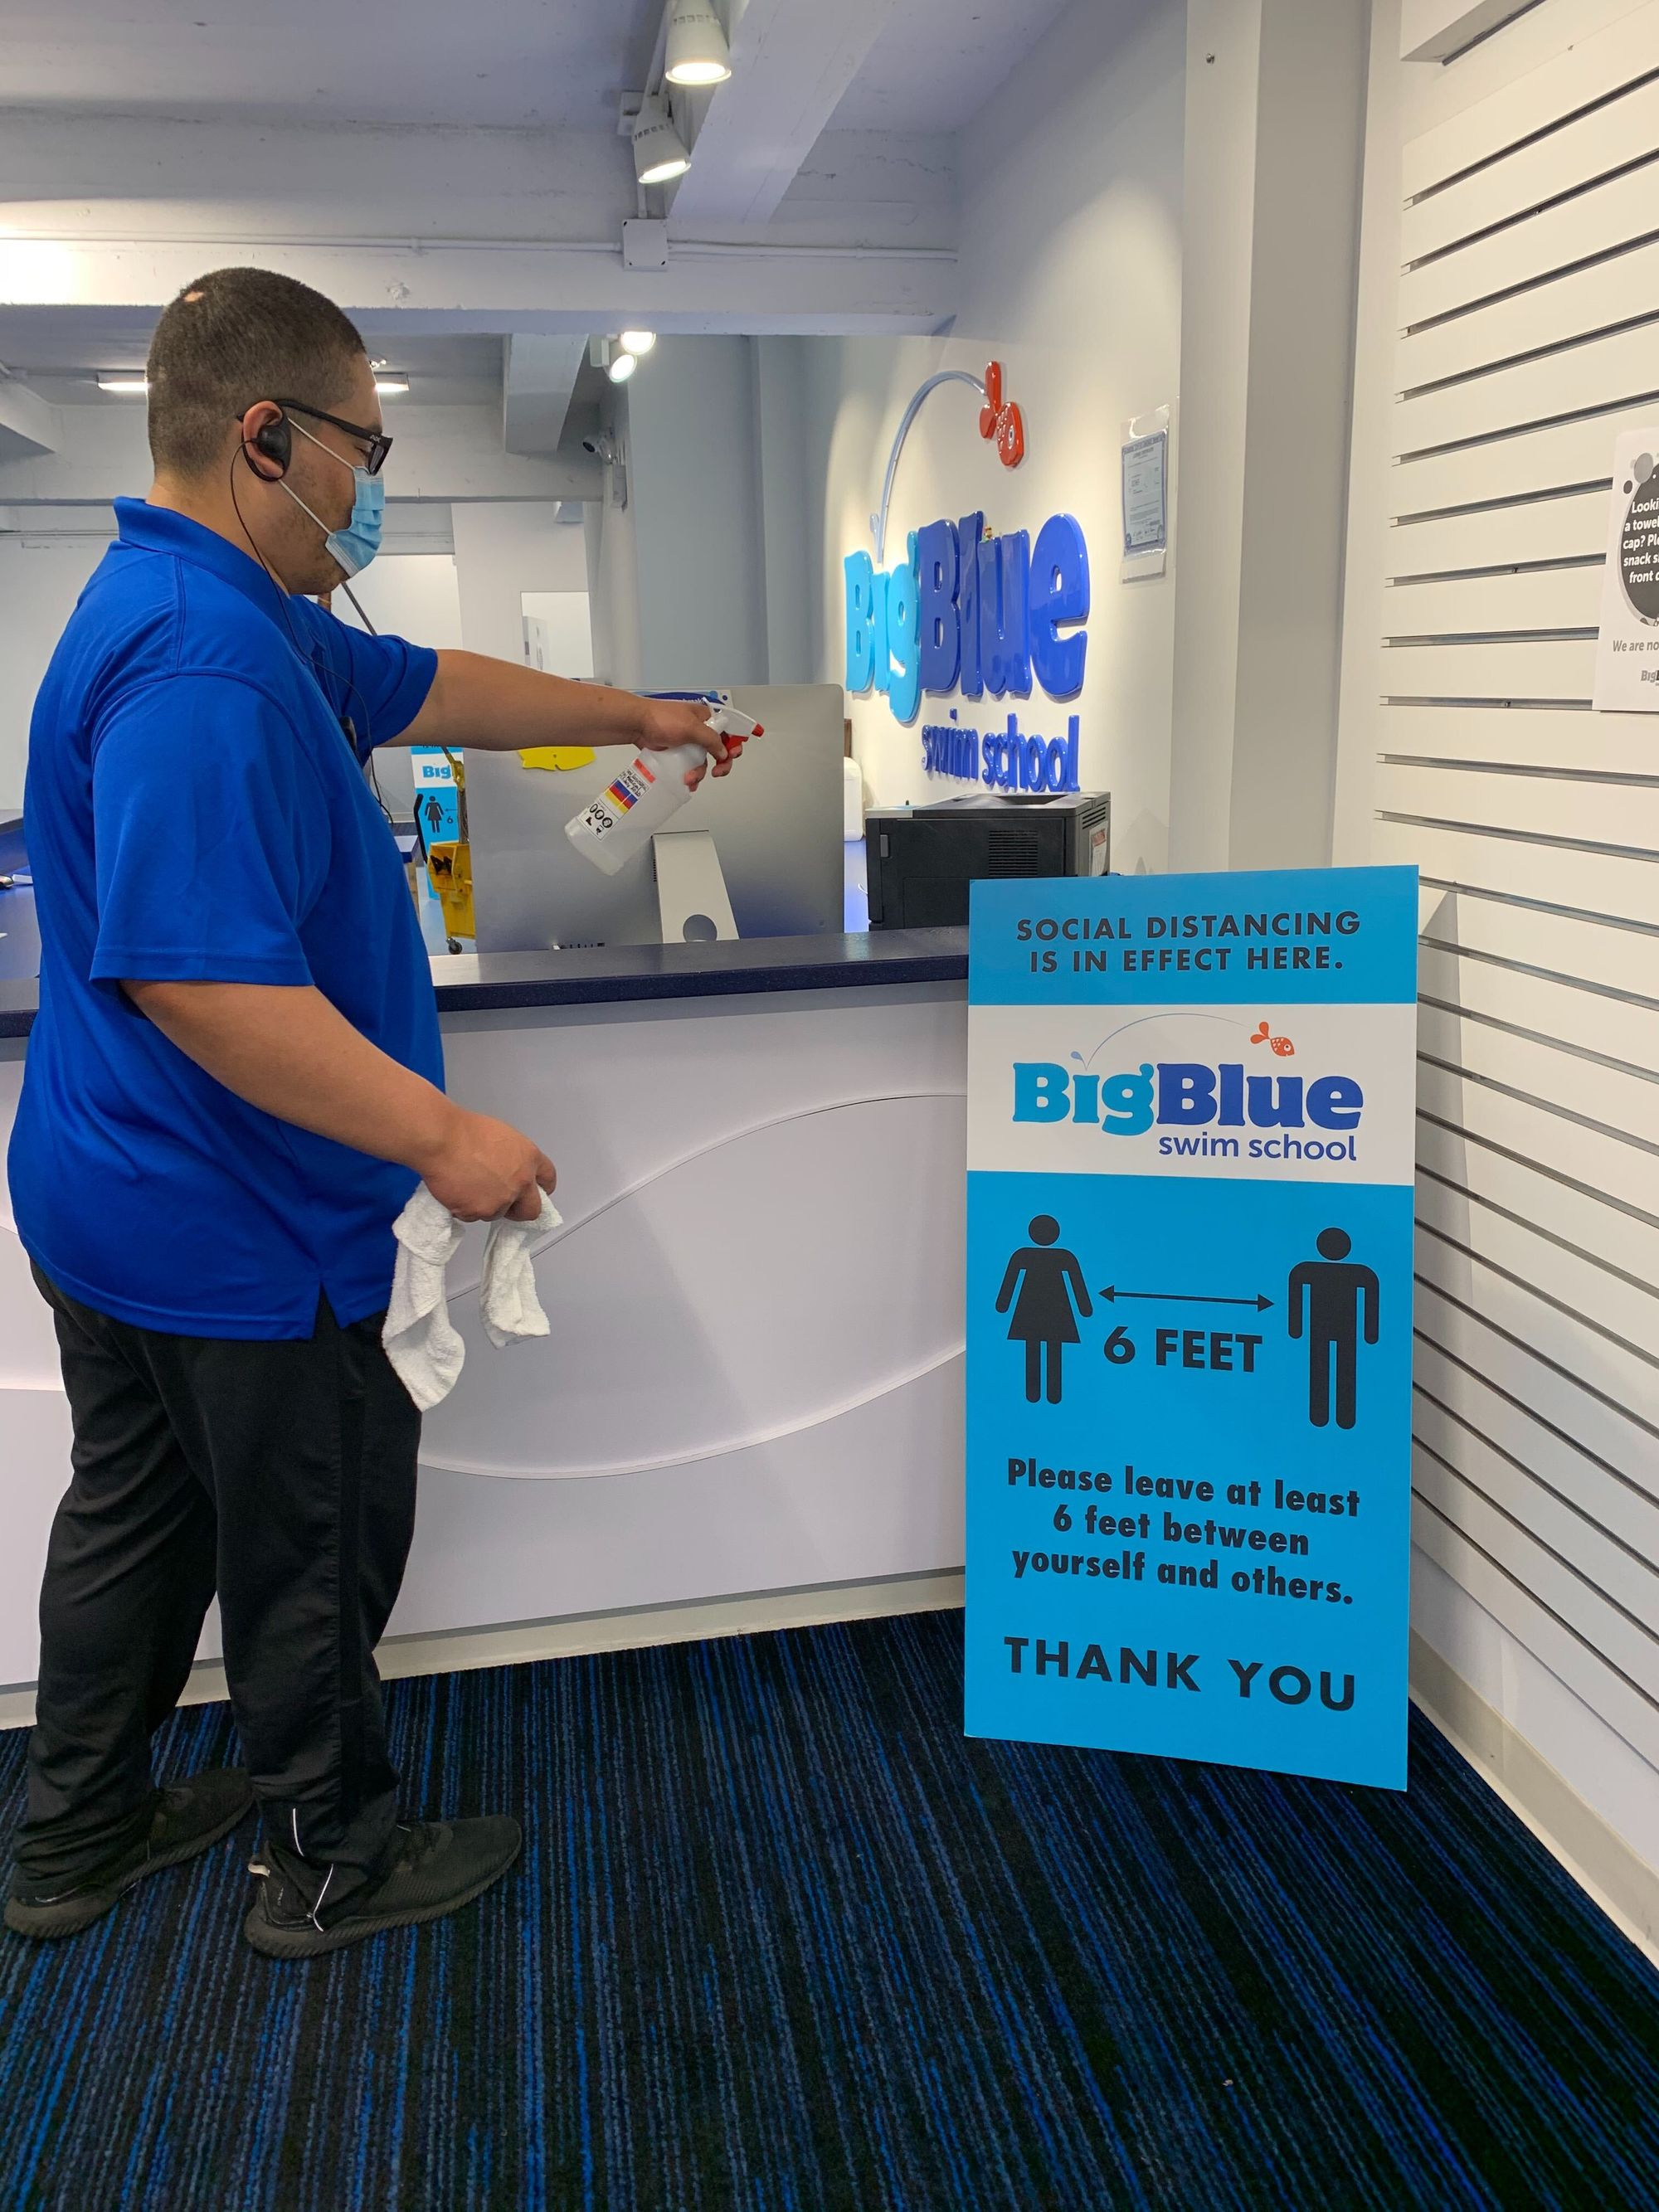 Big Blue staff members disinfect all high touch surfaces every 30 minutes